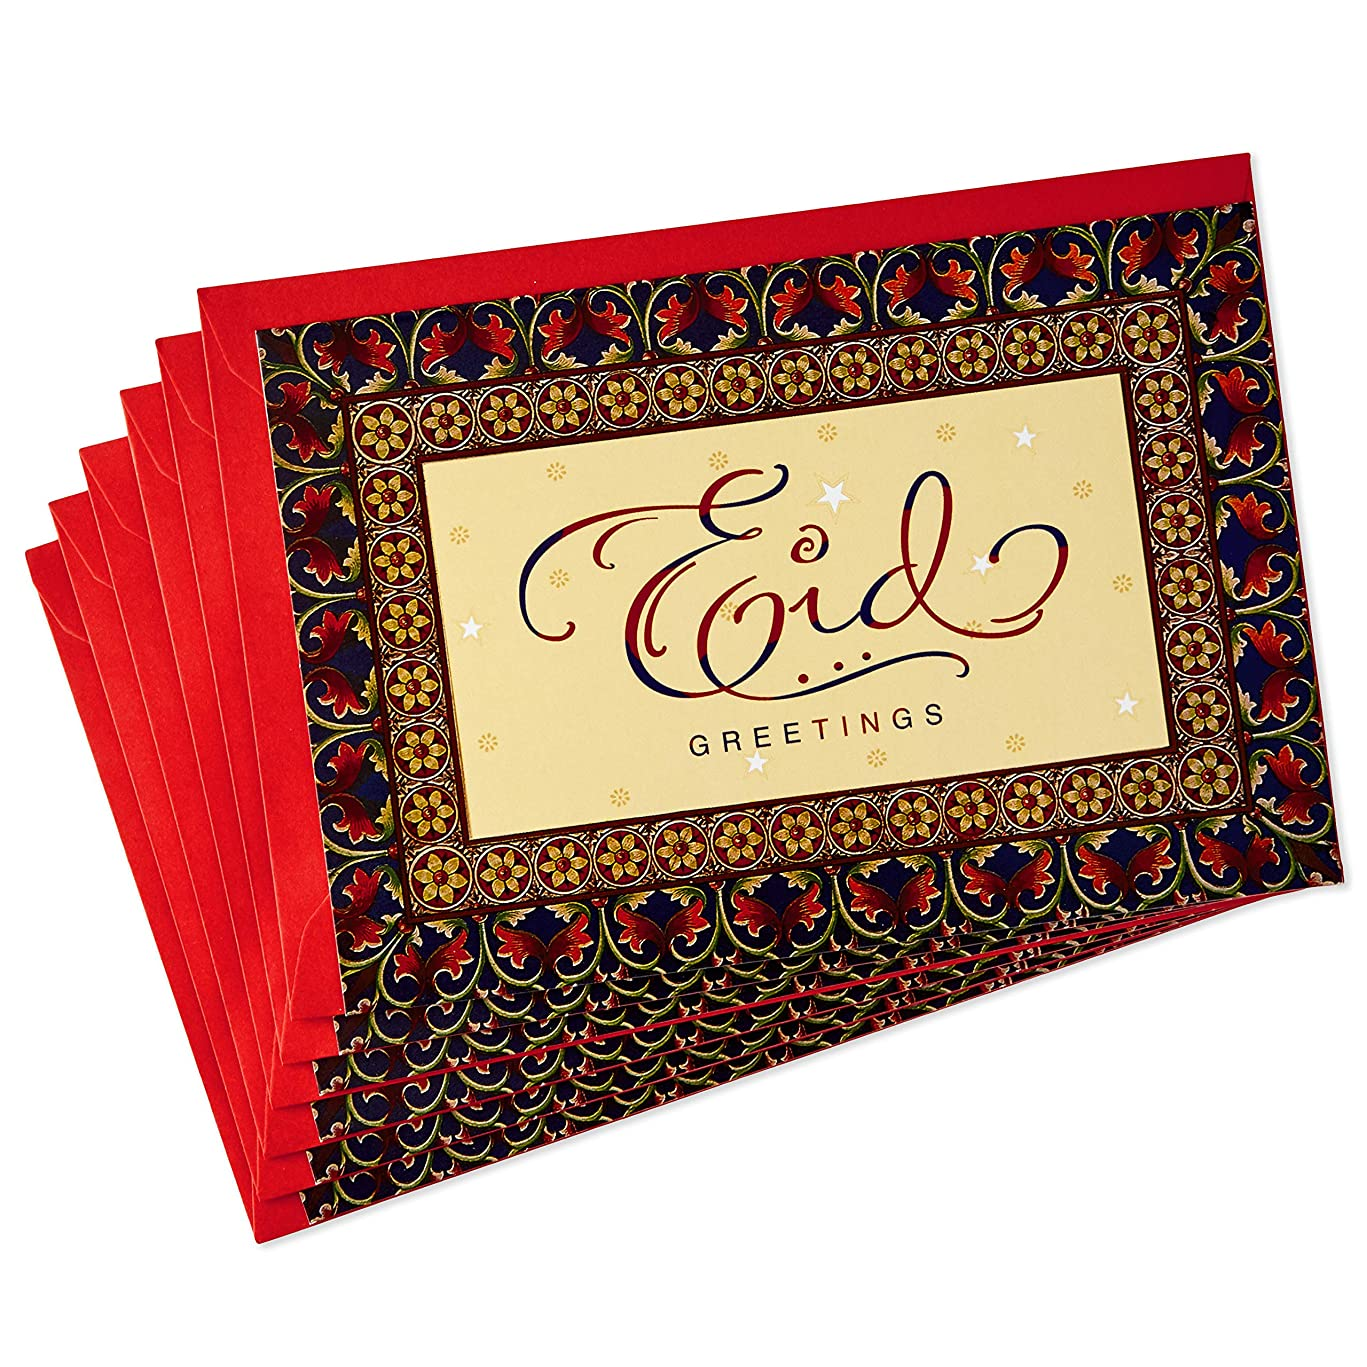 Hallmark Pack of Eid al-Fitr or Eid Al-Adha Cards, Best Wishes (6 Cards with Envelopes)